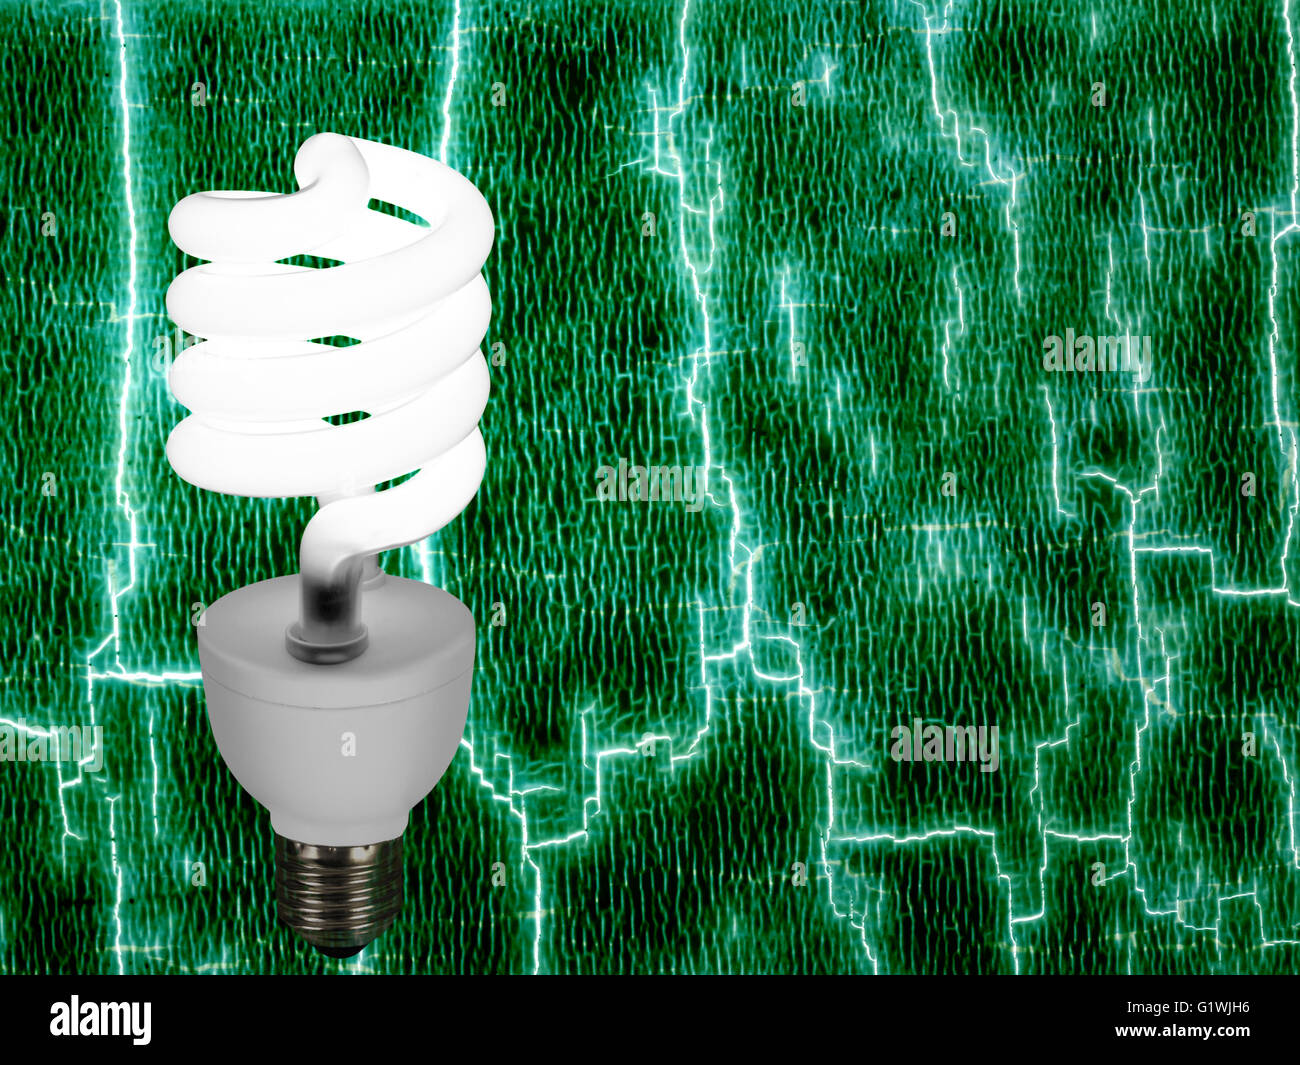 New style light bulb on abstract background. Green energy. - Stock Image